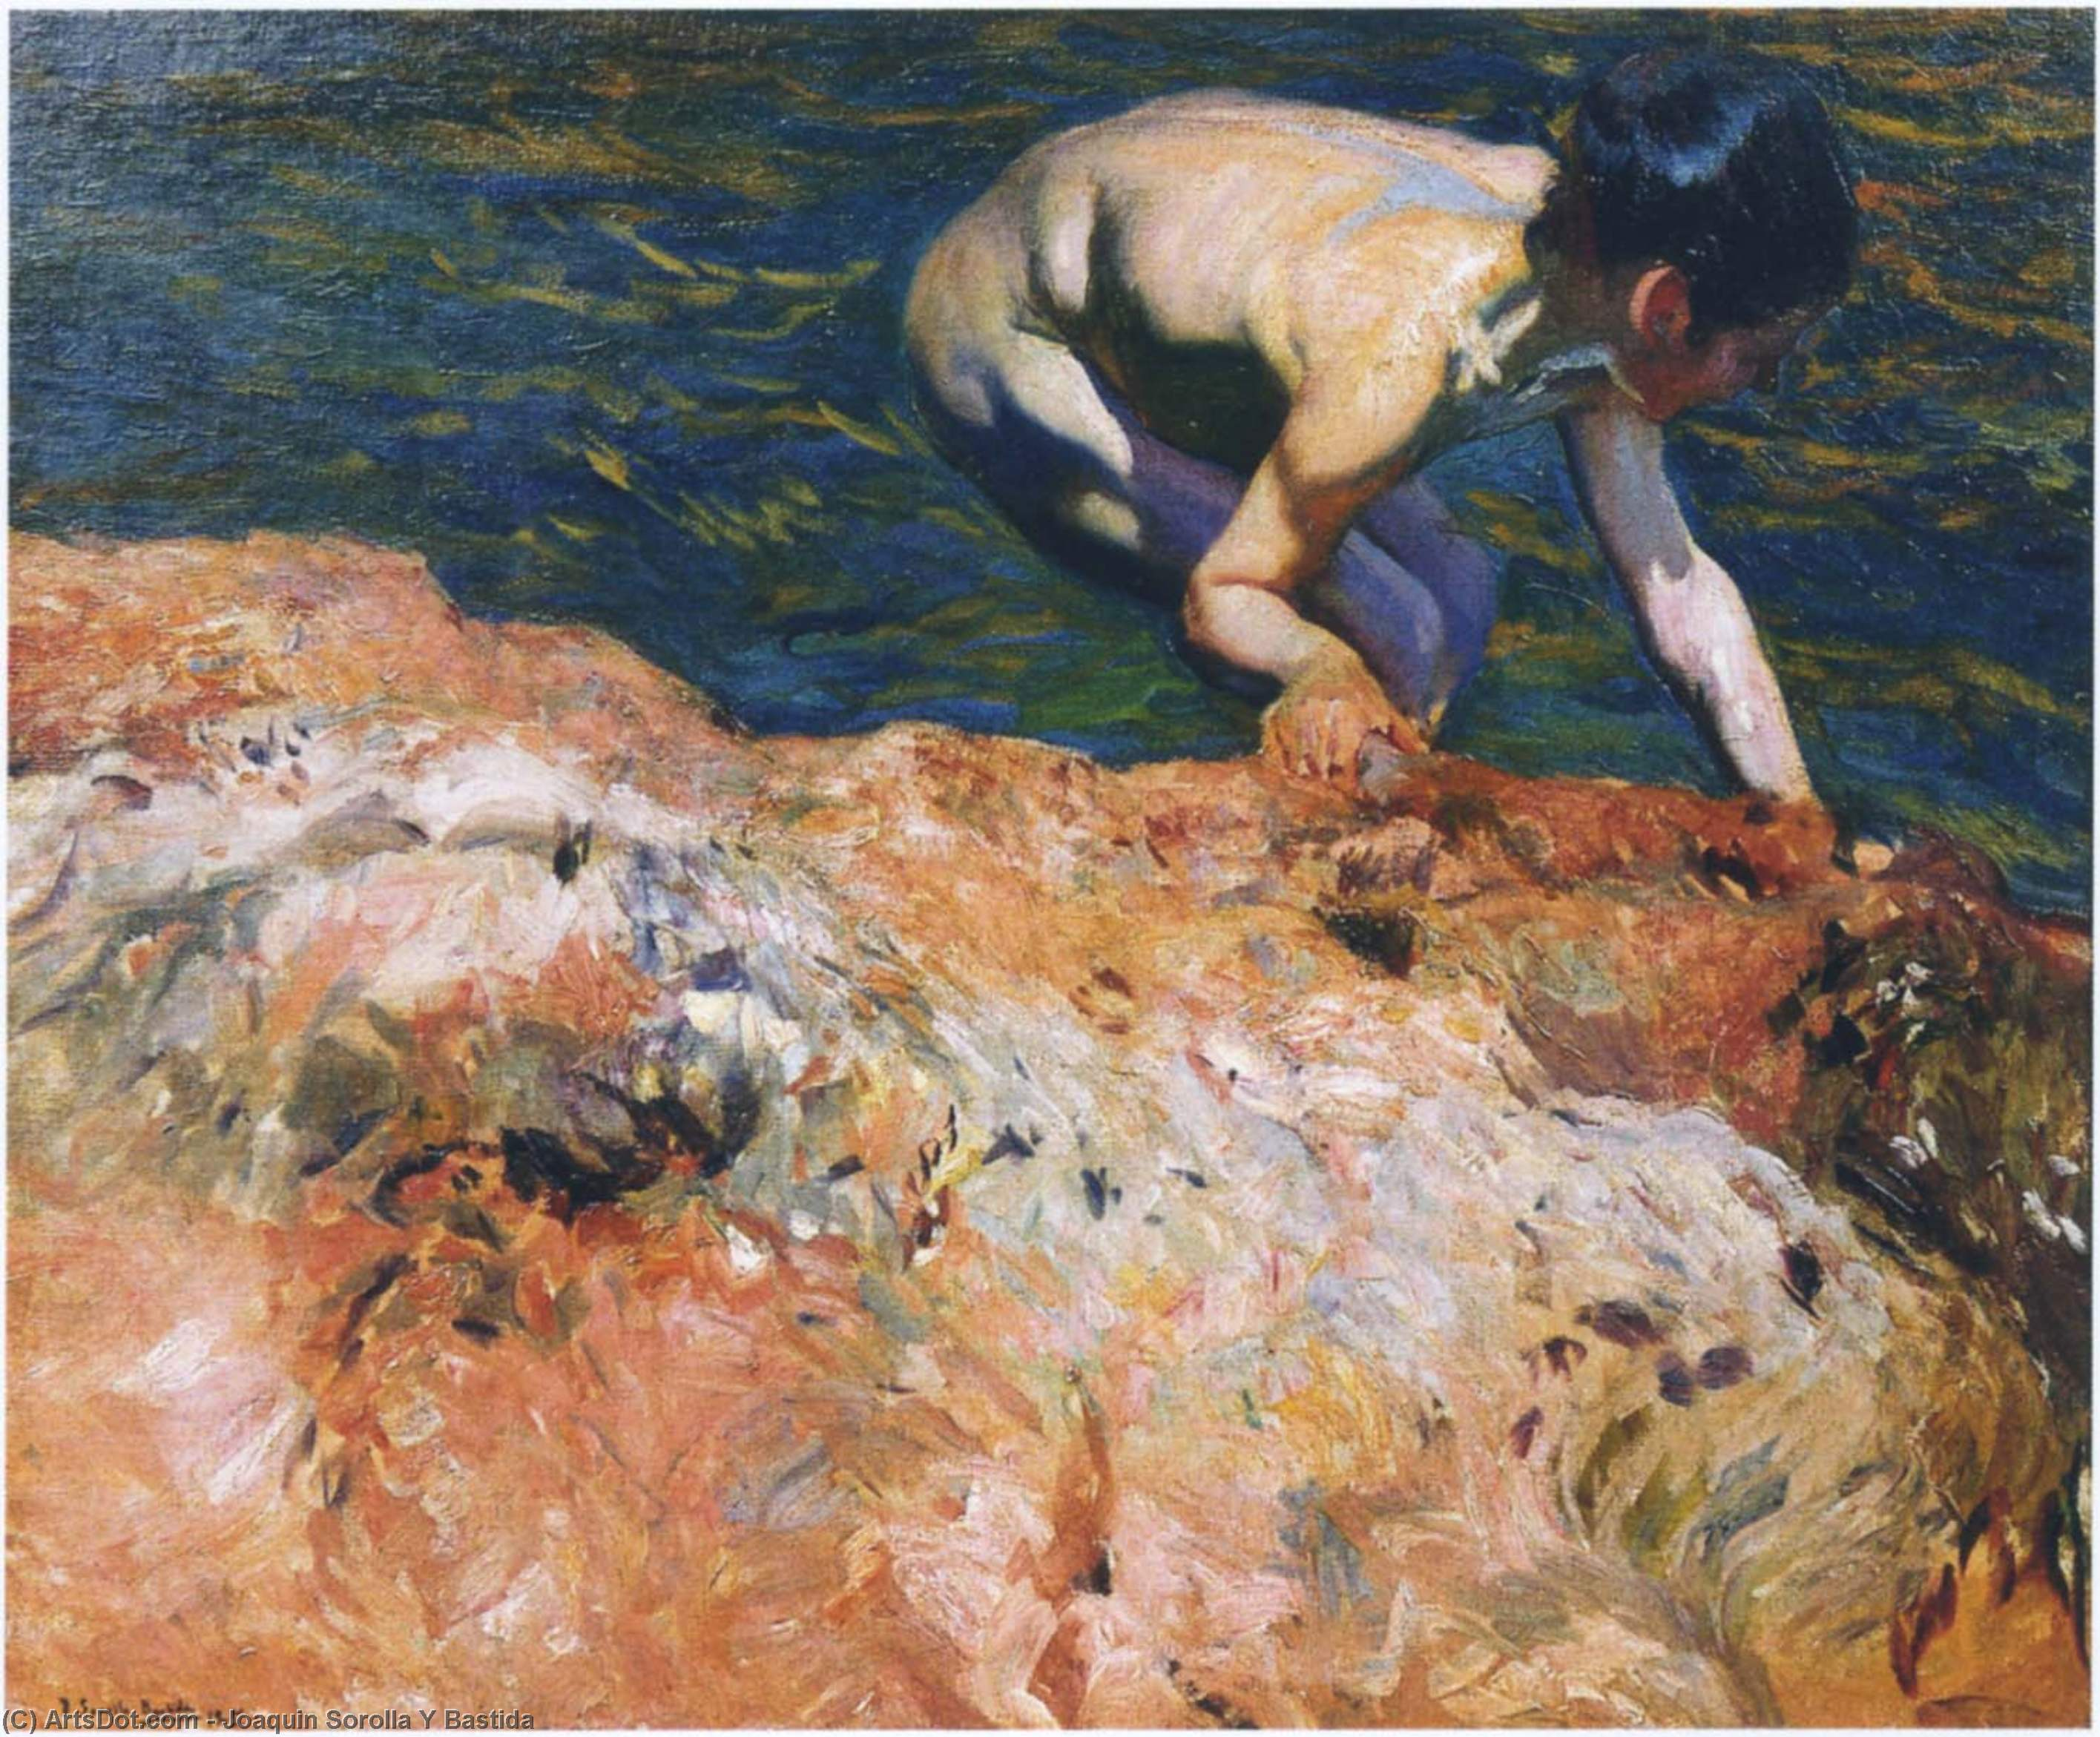 Looking for Shellfish, Oil On Canvas by Joaquin Sorolla Y Bastida (1863-1923, Spain)